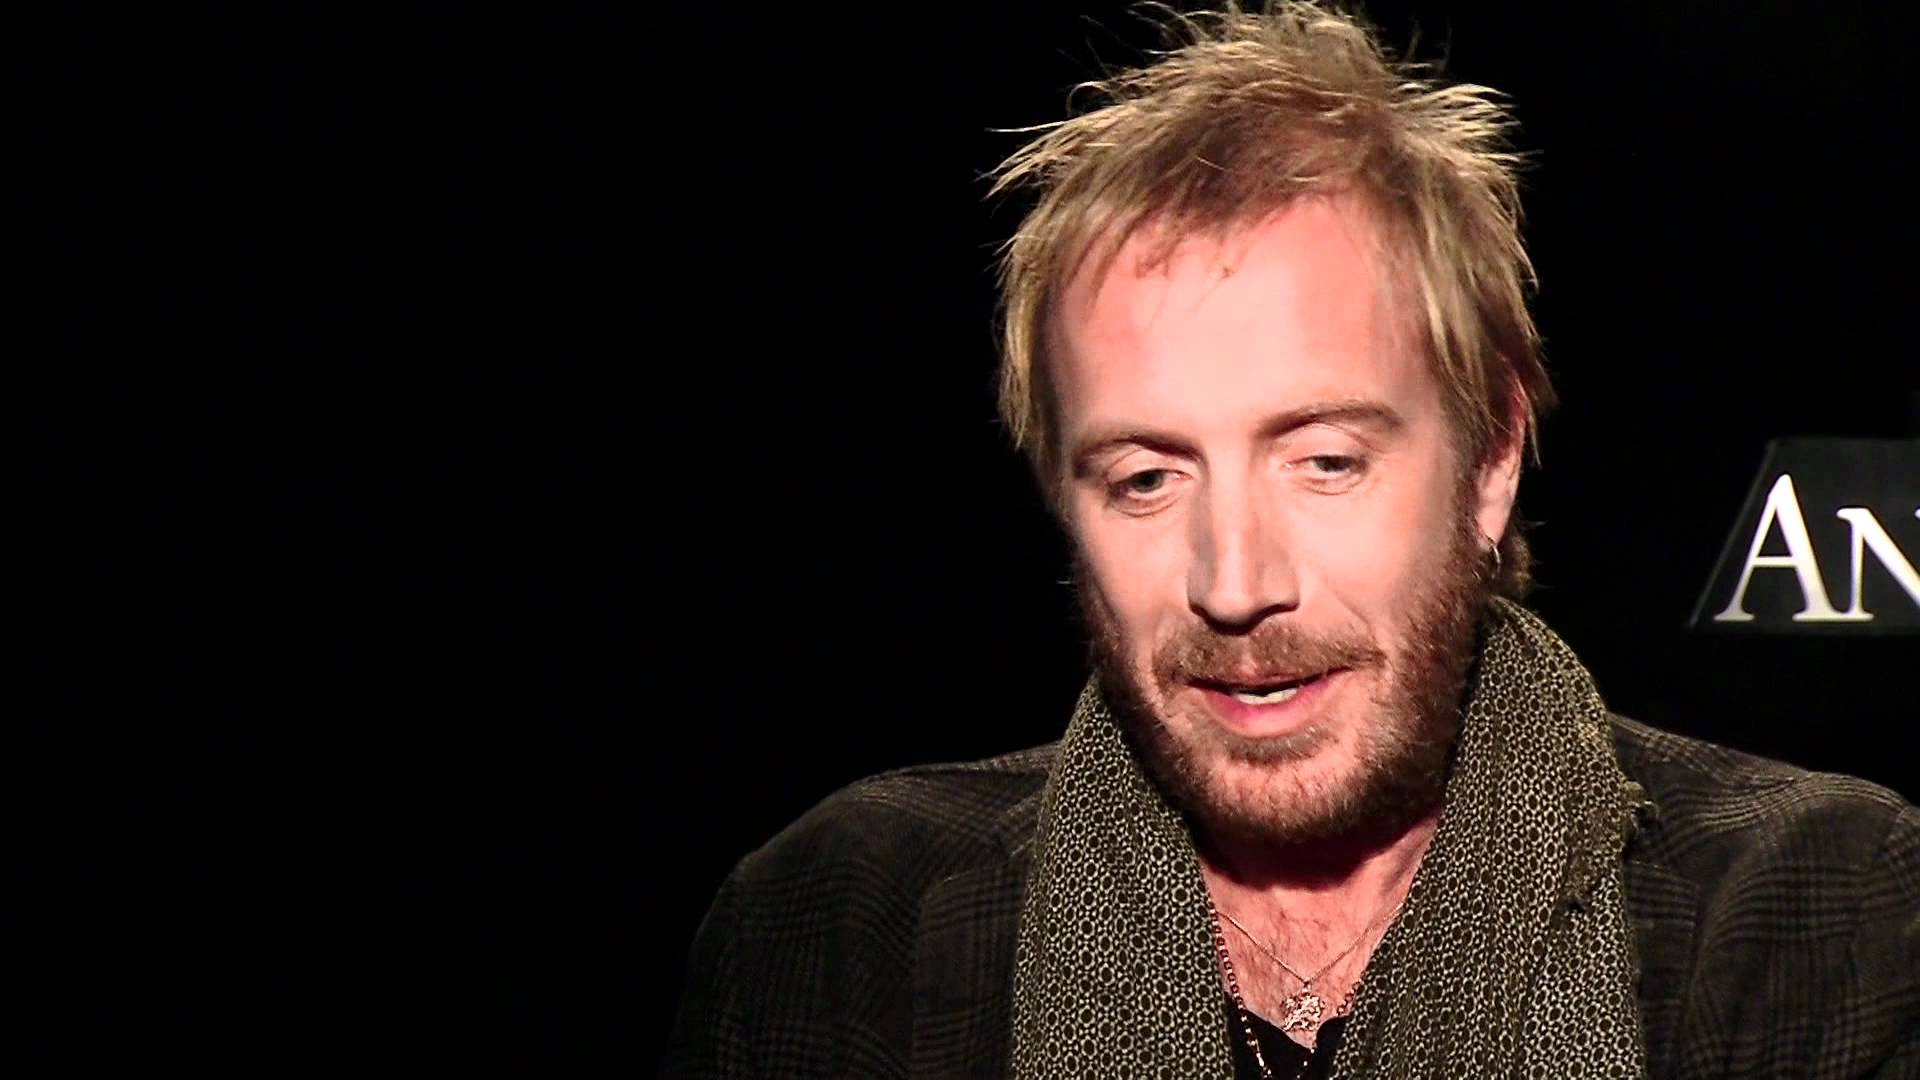 Rhys Ifans (born 1967) Rhys Ifans (born 1967) new photo